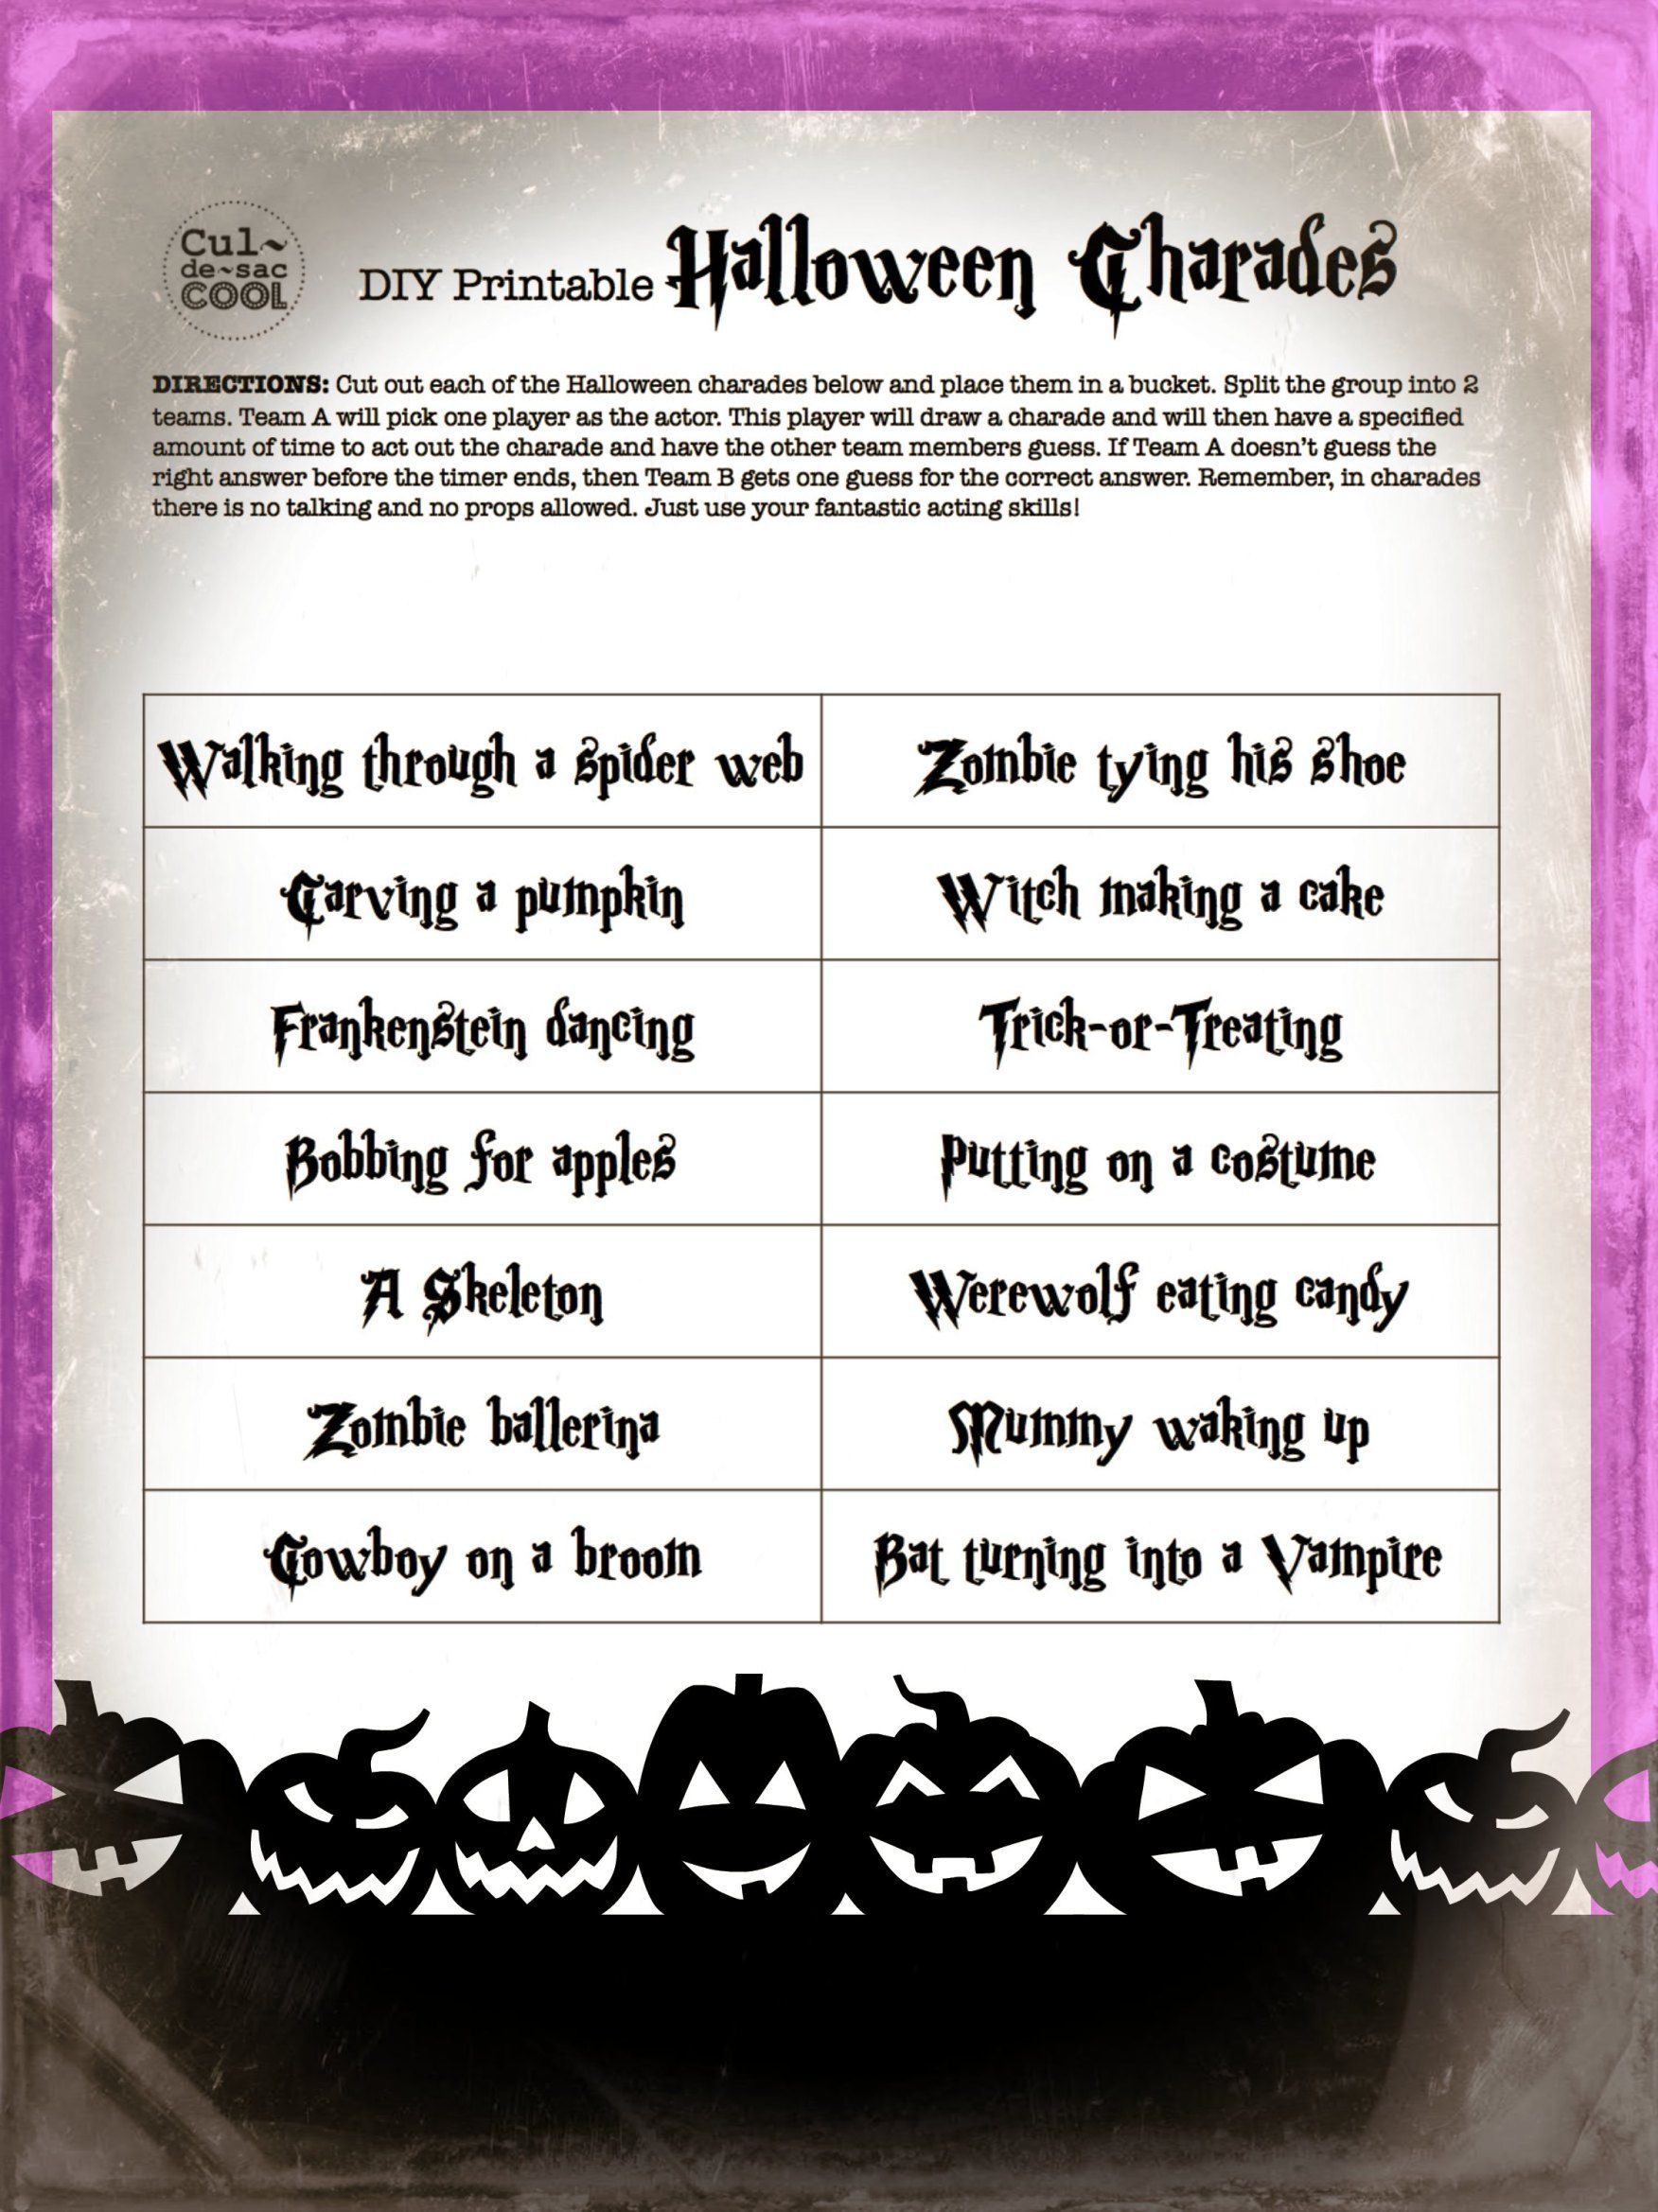 photograph relating to Halloween Charades Printable titled do it yourself-printable-halloween-charades-2 Halloween Clroom